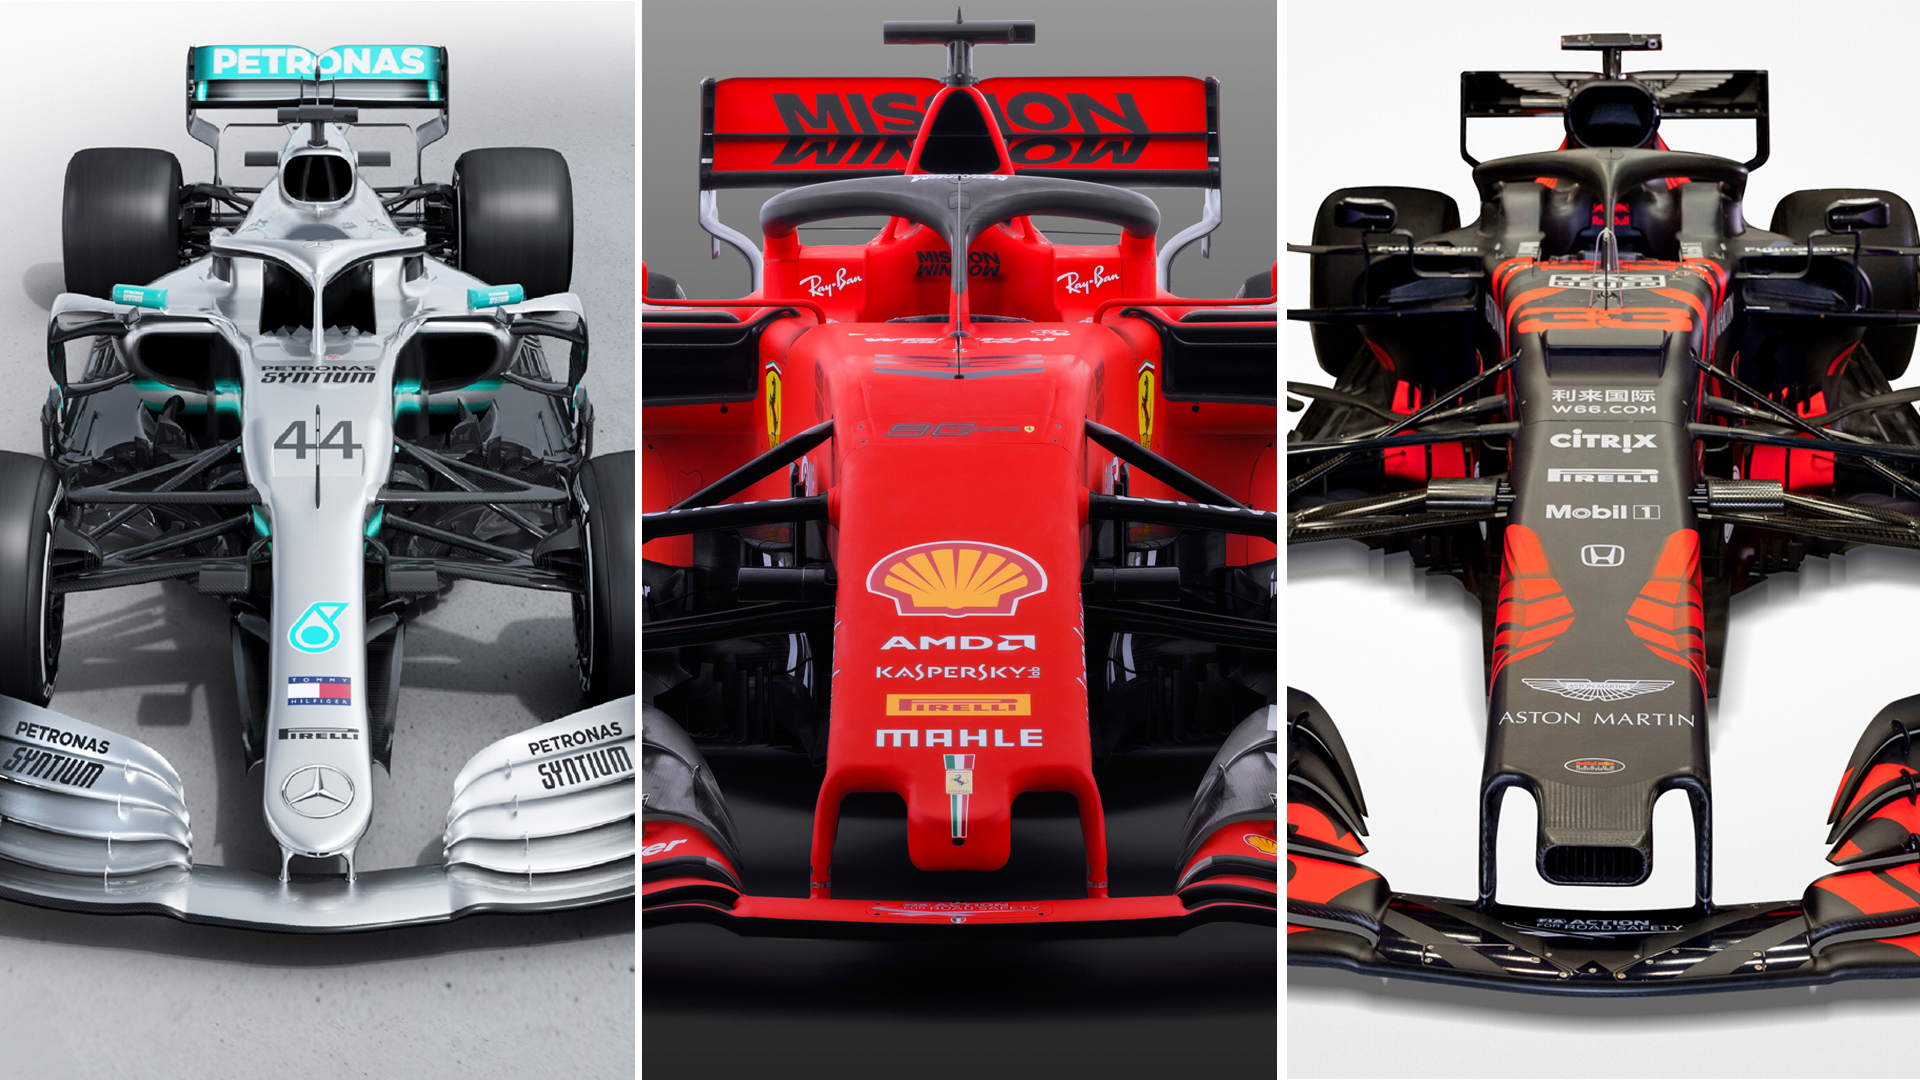 Mercedes Ferrari And Red Bull Mark Hughes Analyses The Top Three Teams 2019 Cars Formula 1